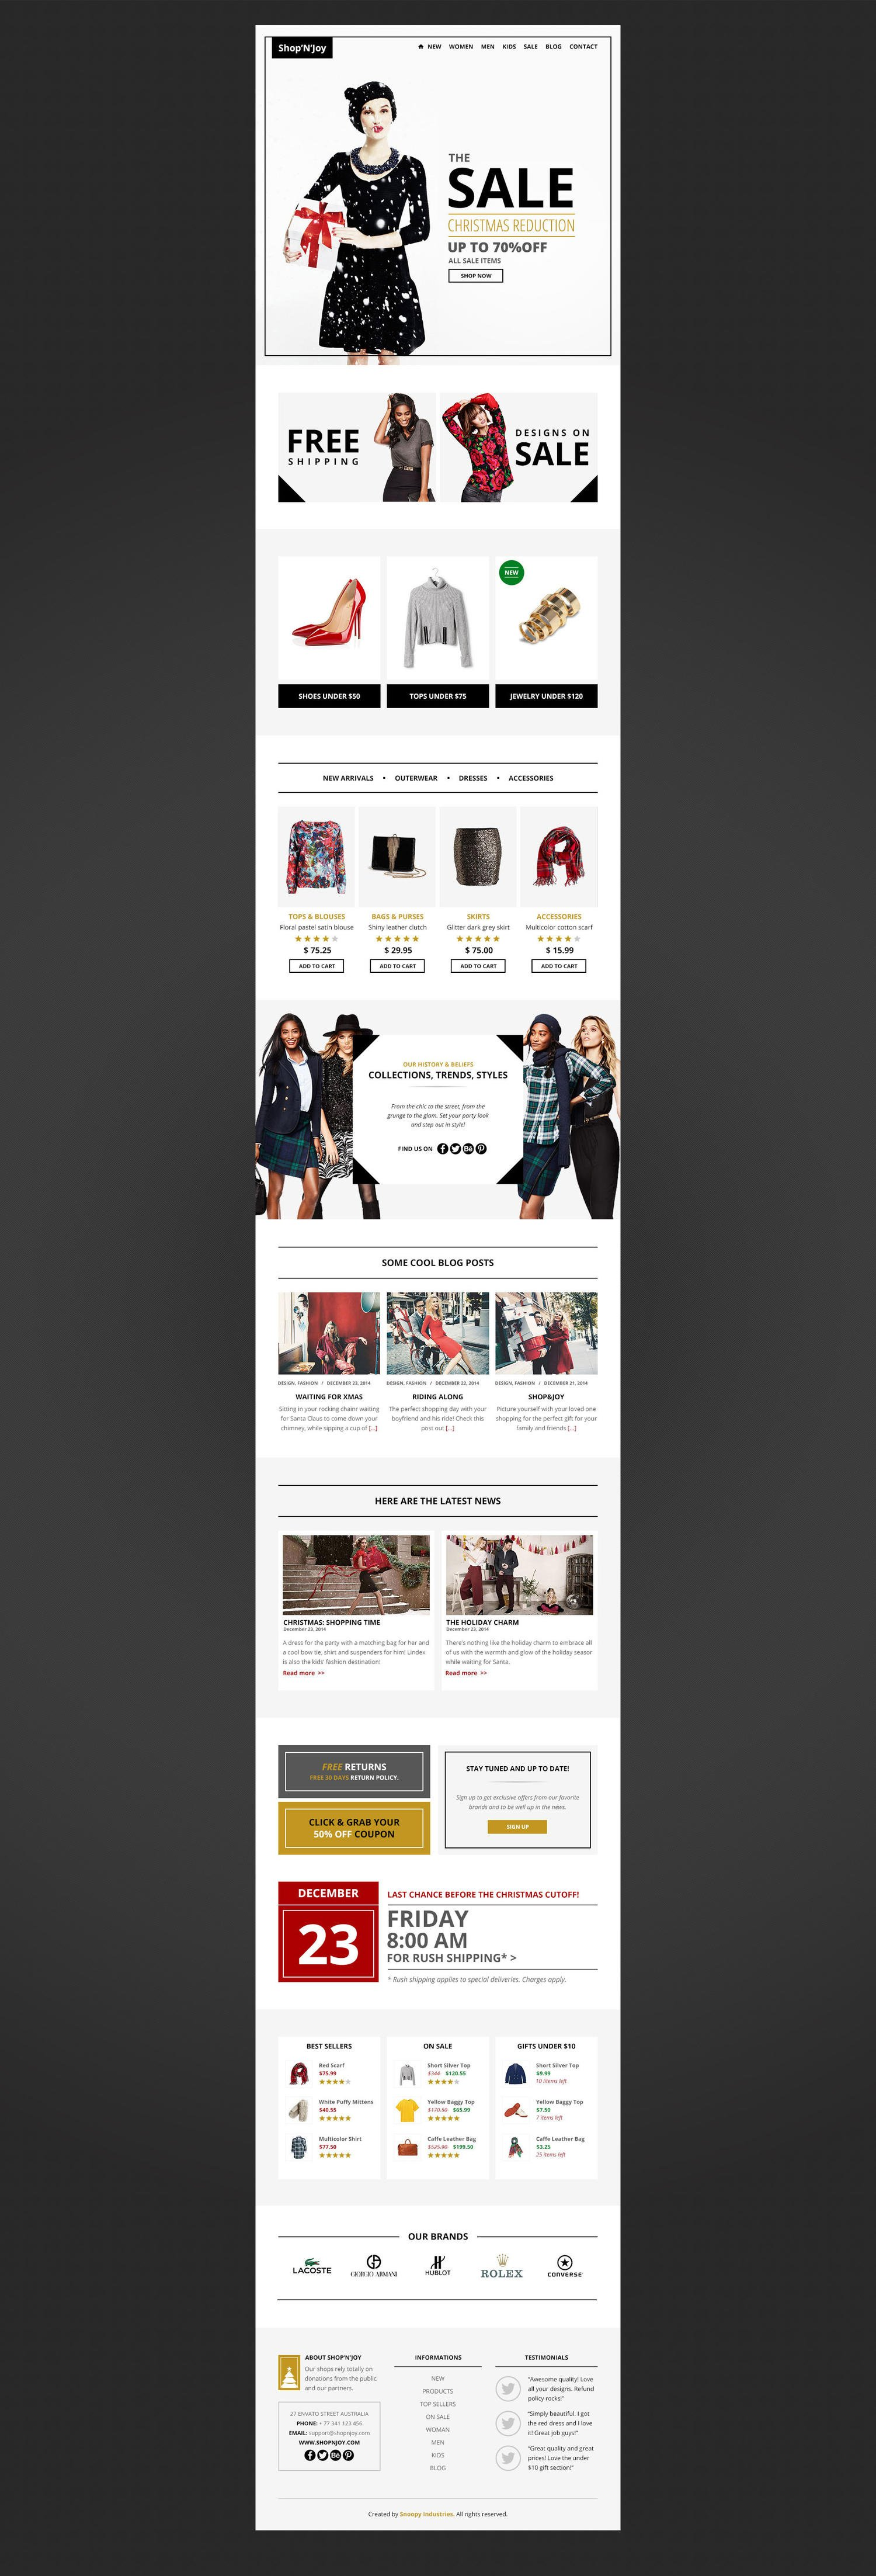 PSD to Responsive Email HTML Code by BigBangThemes - 91385